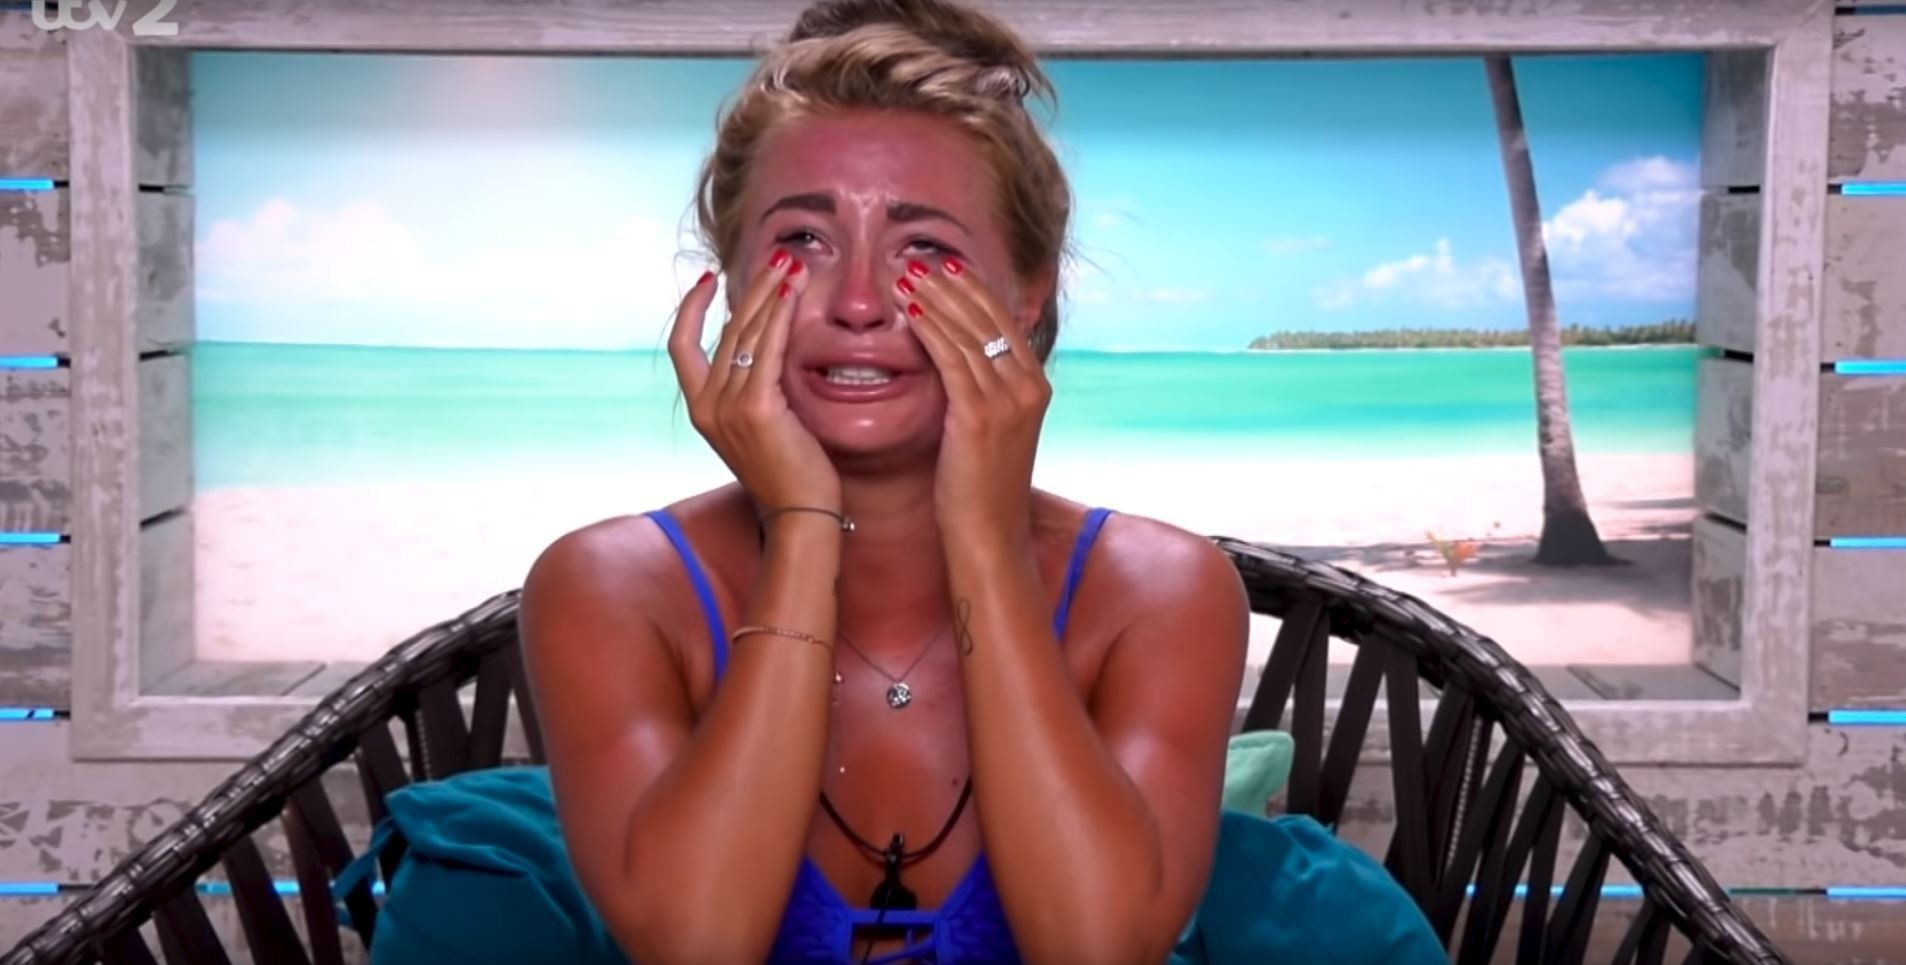 15 Stages Of Emotion We Will All Feel As 'Love Island' Comes To An